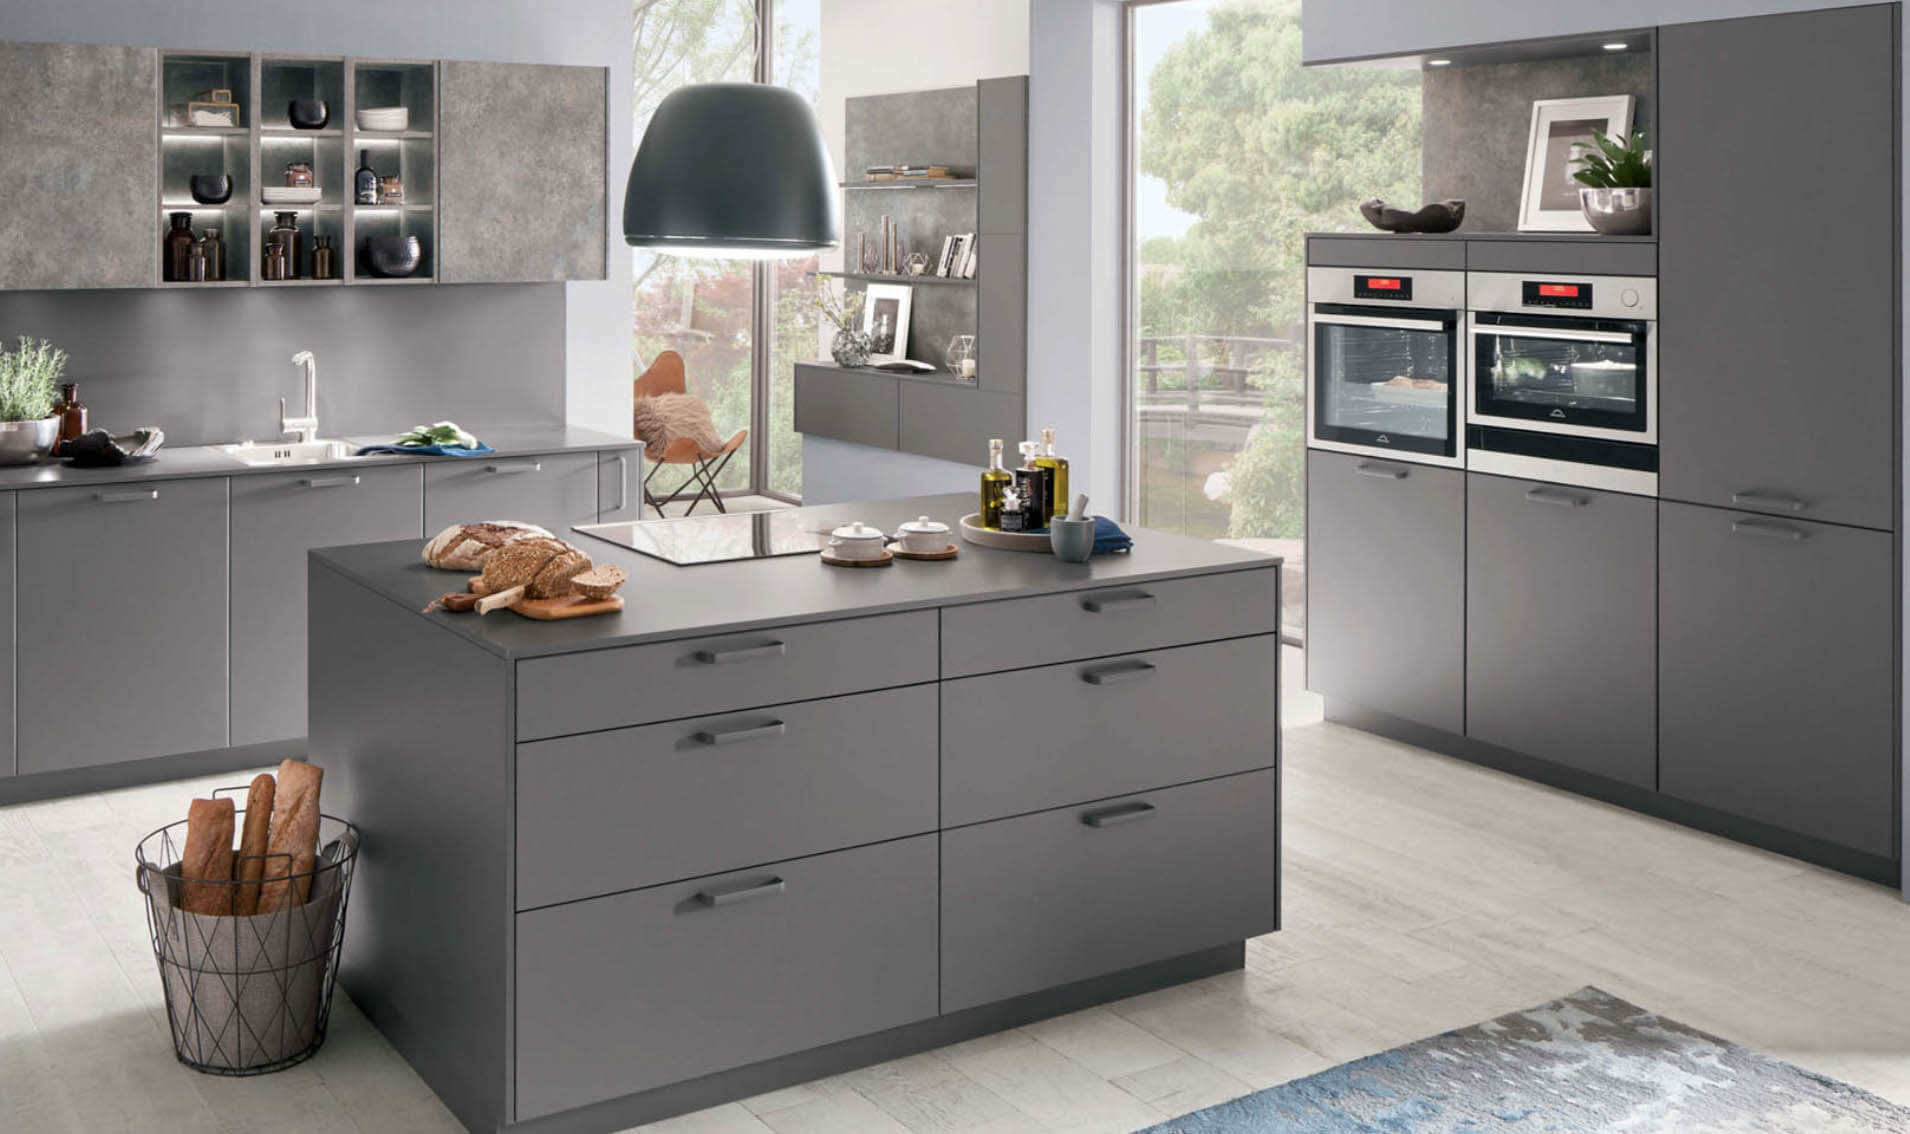 Nobilia Riva I Home Kitchens Nobilia Kitchens German Kitchens Nobilia